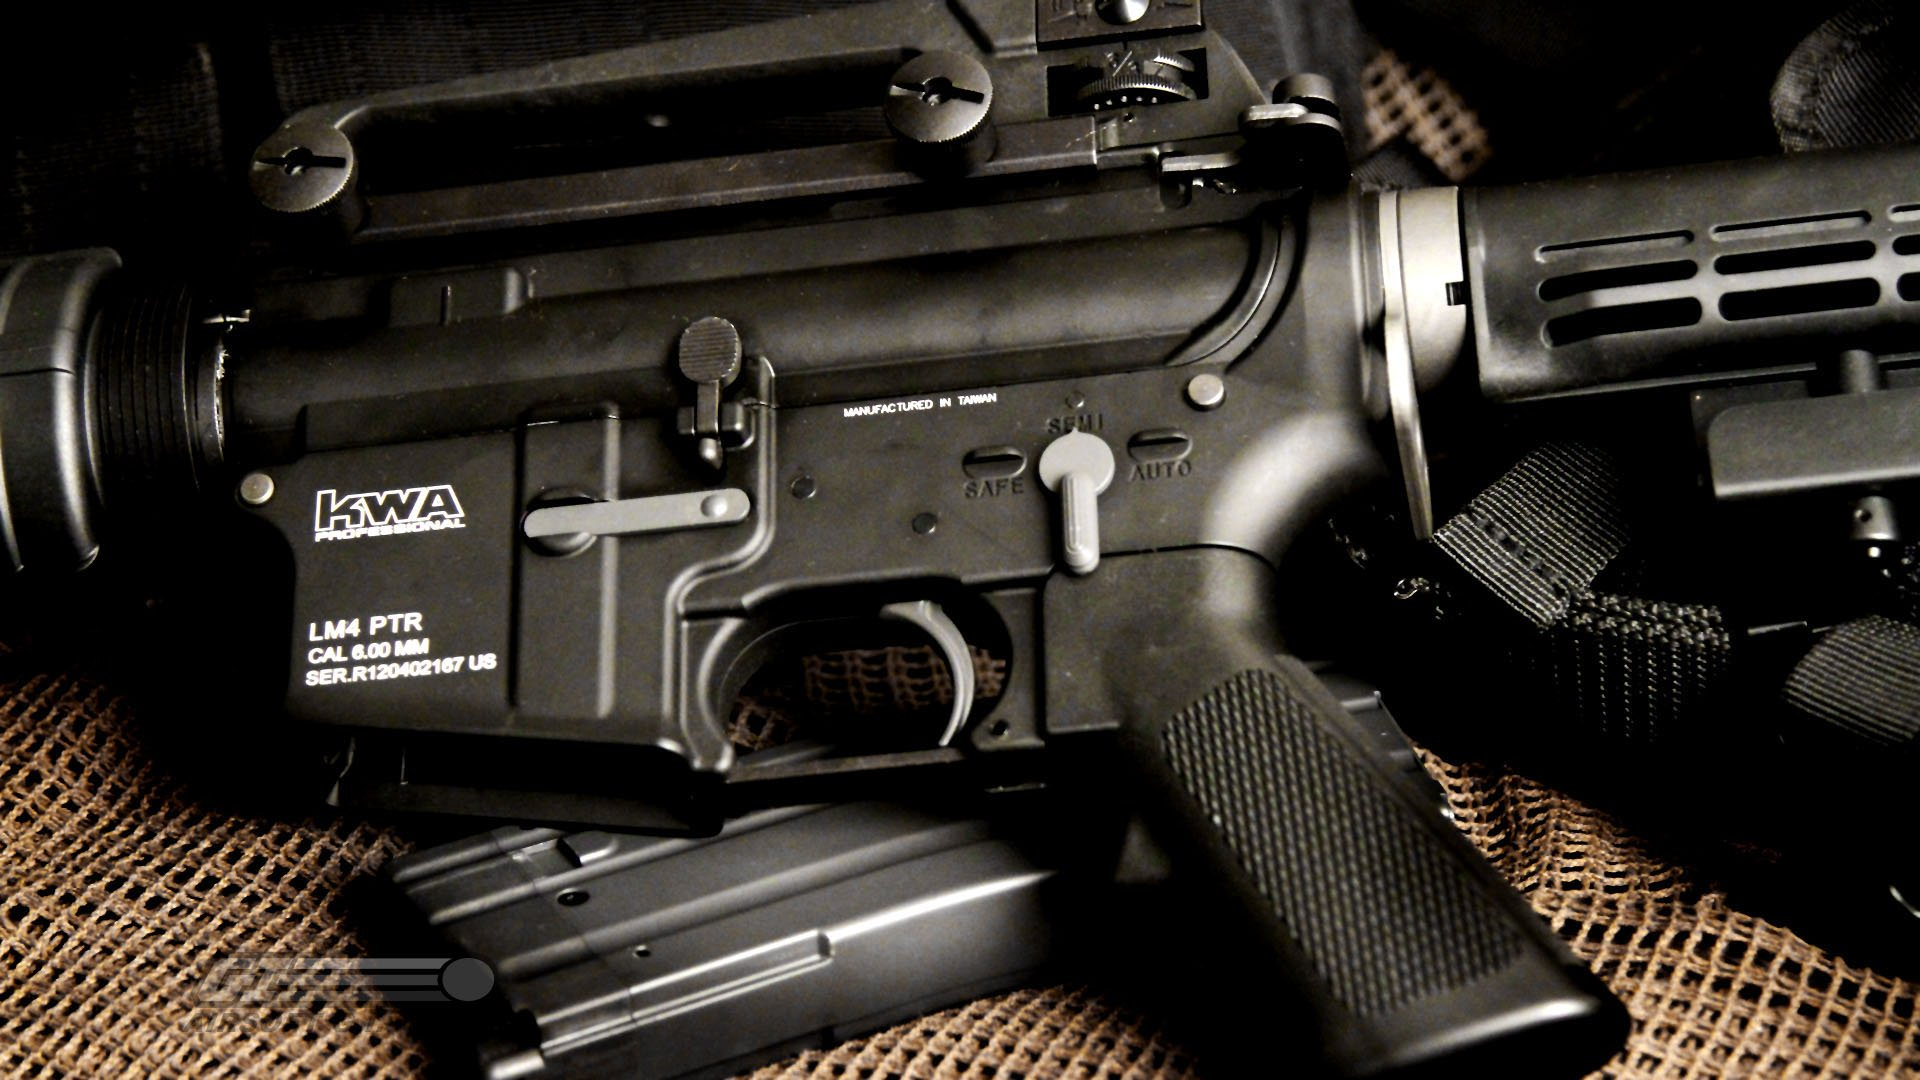 KWA LM4 - The Professional Training Rifle | Airsoft GI TV Blog